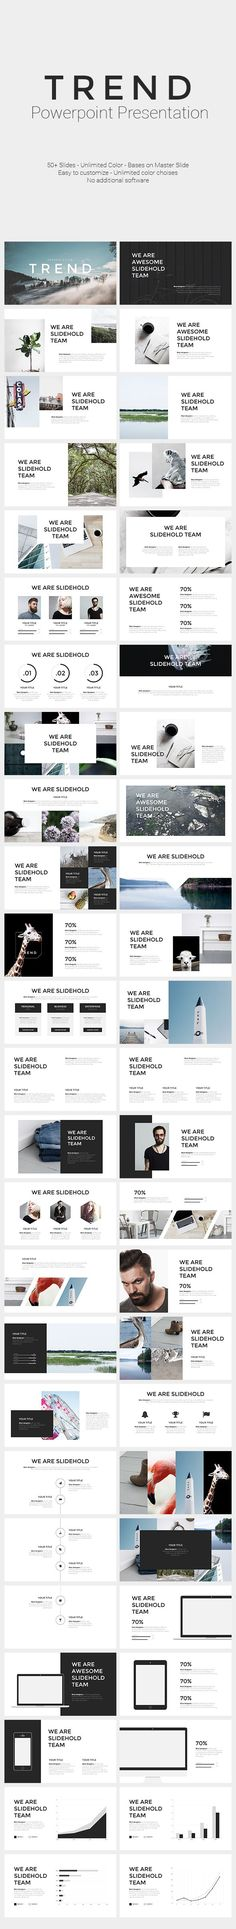 TREND | PowerPoint Template - #PowerPoint #Templates Presentation Templates